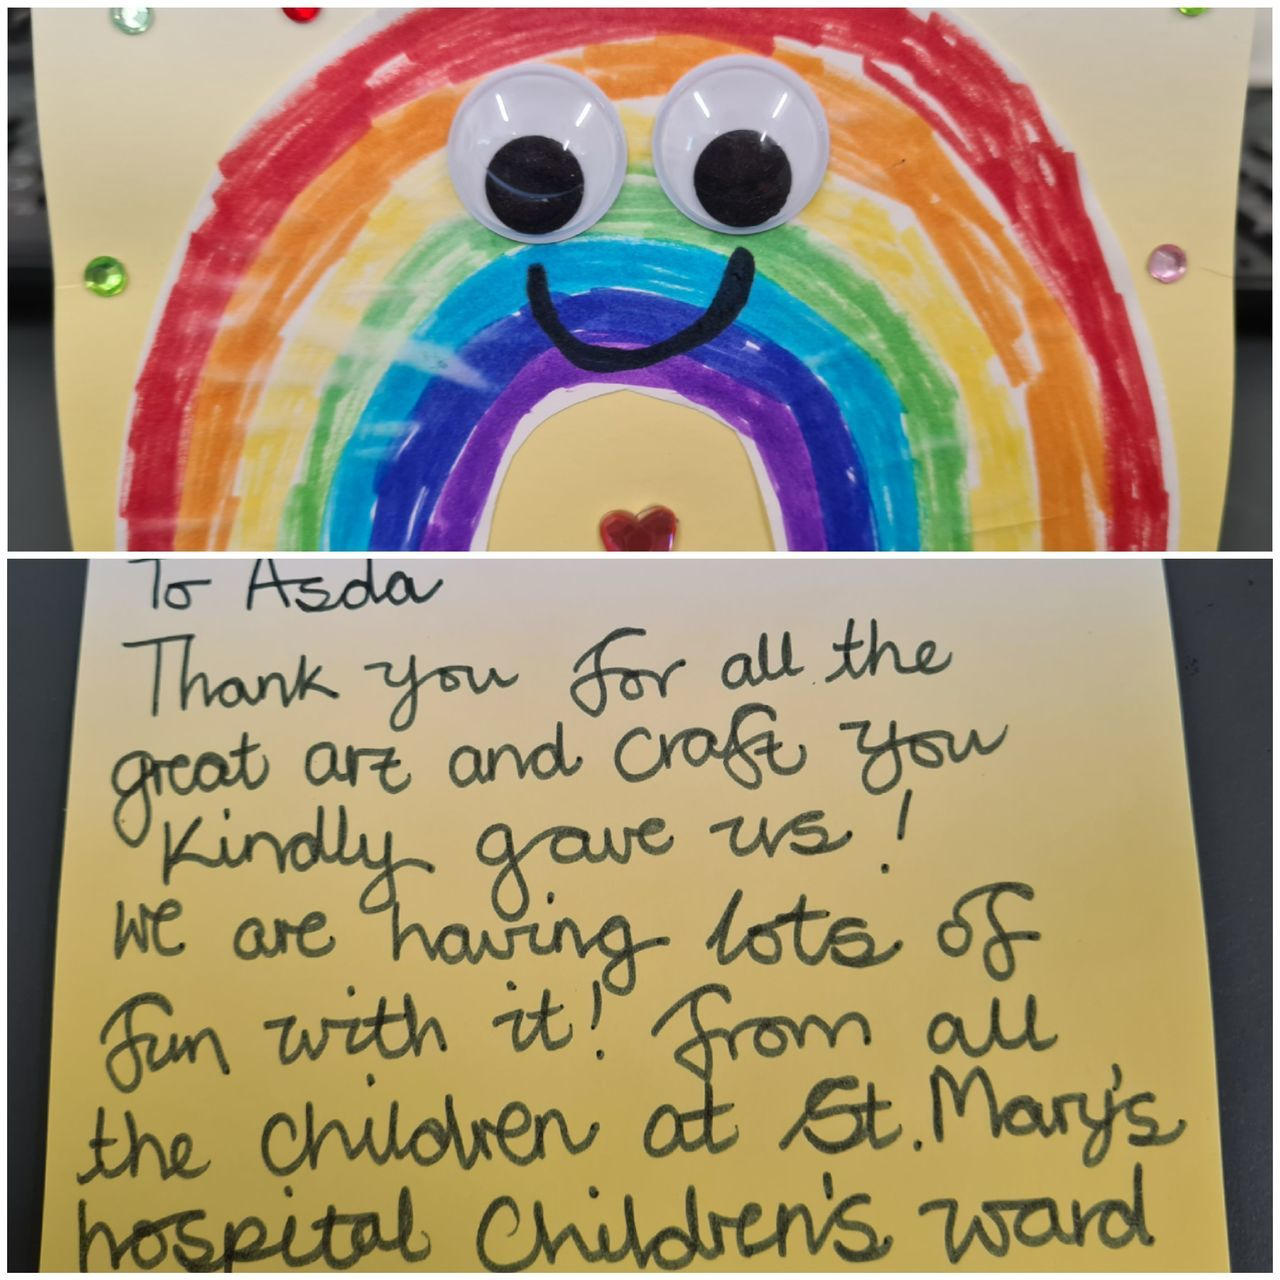 Rainbow thank you card from St Mary's Hospital Children's Ward | Asda Newport Isle of Wight